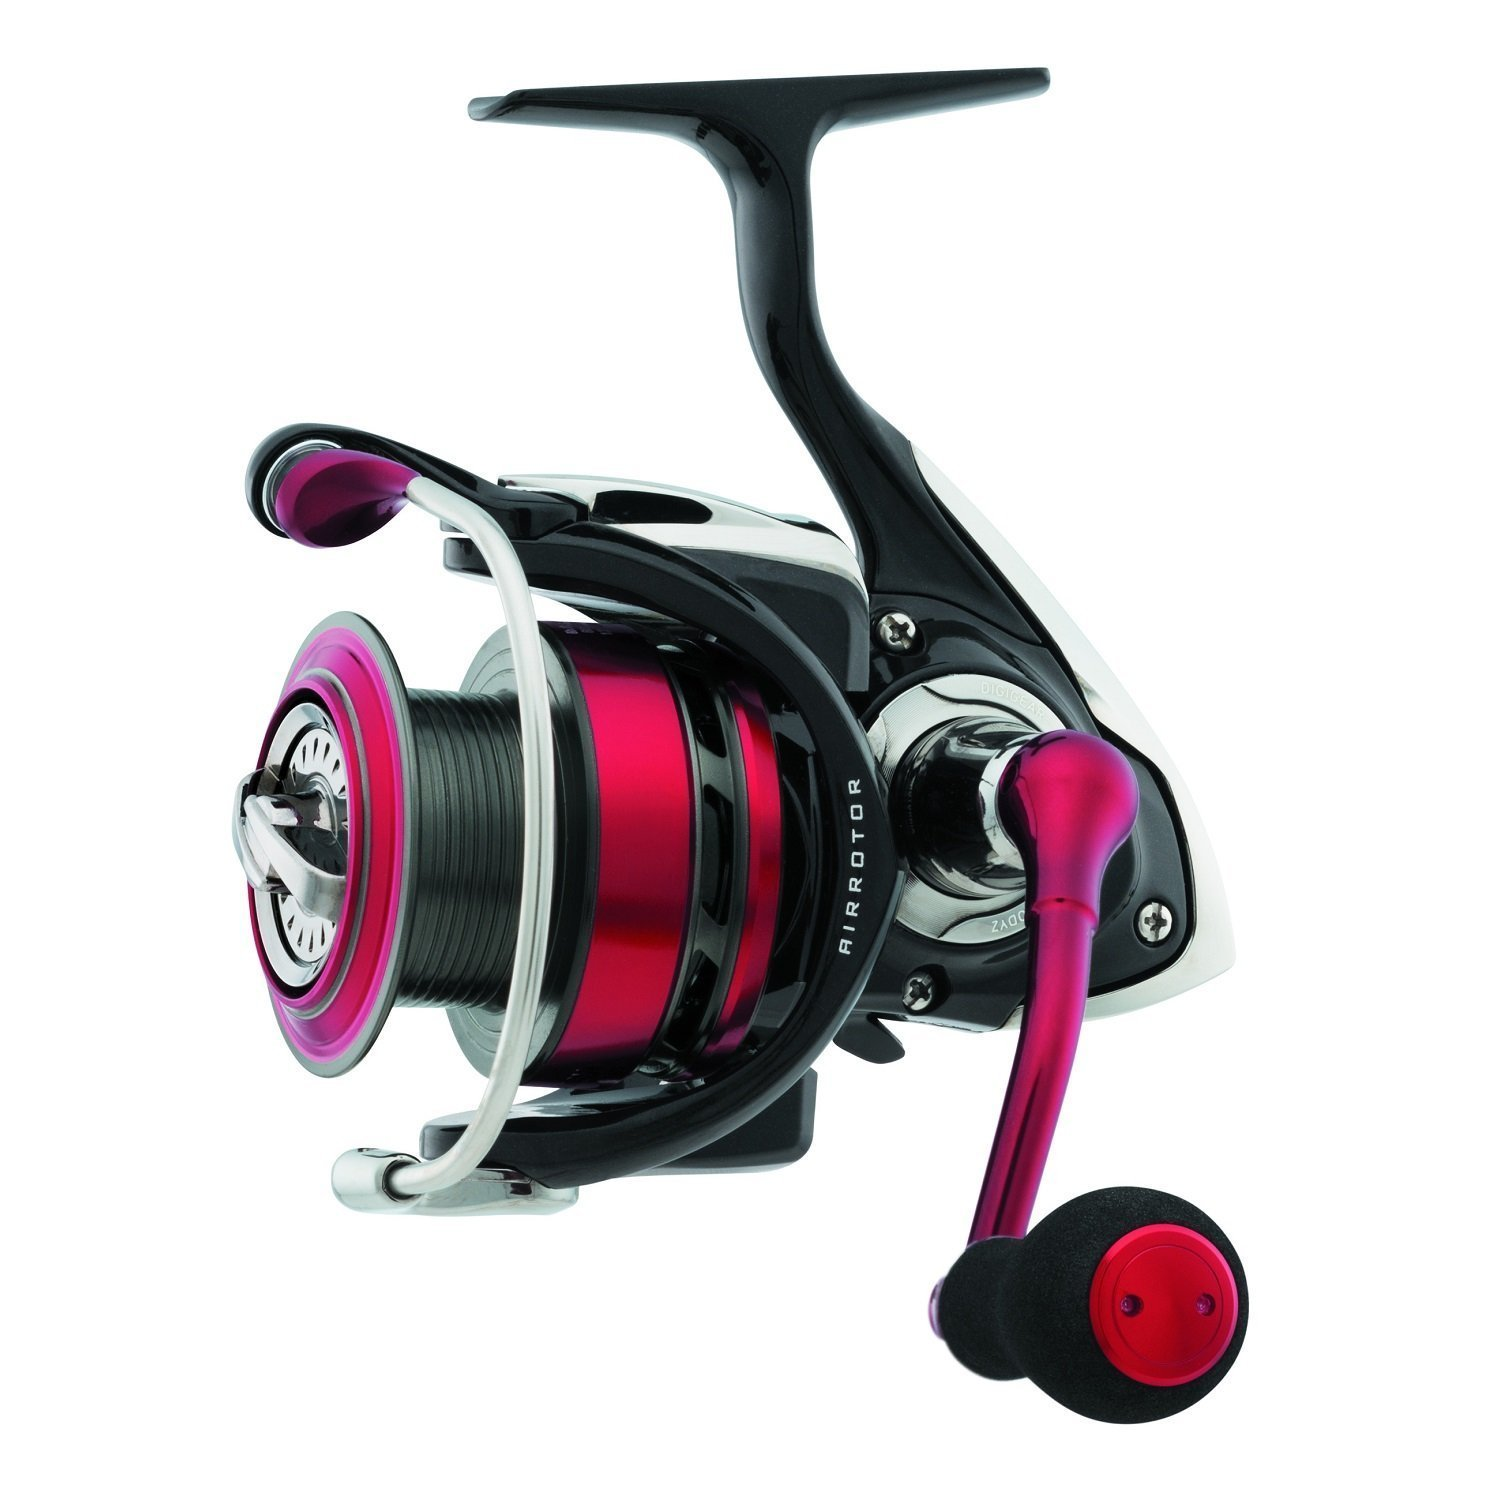 Daiwa Fuego 6.0:1 2500 8BB Spin Reel 10# Box, 140 yd by Daiwa